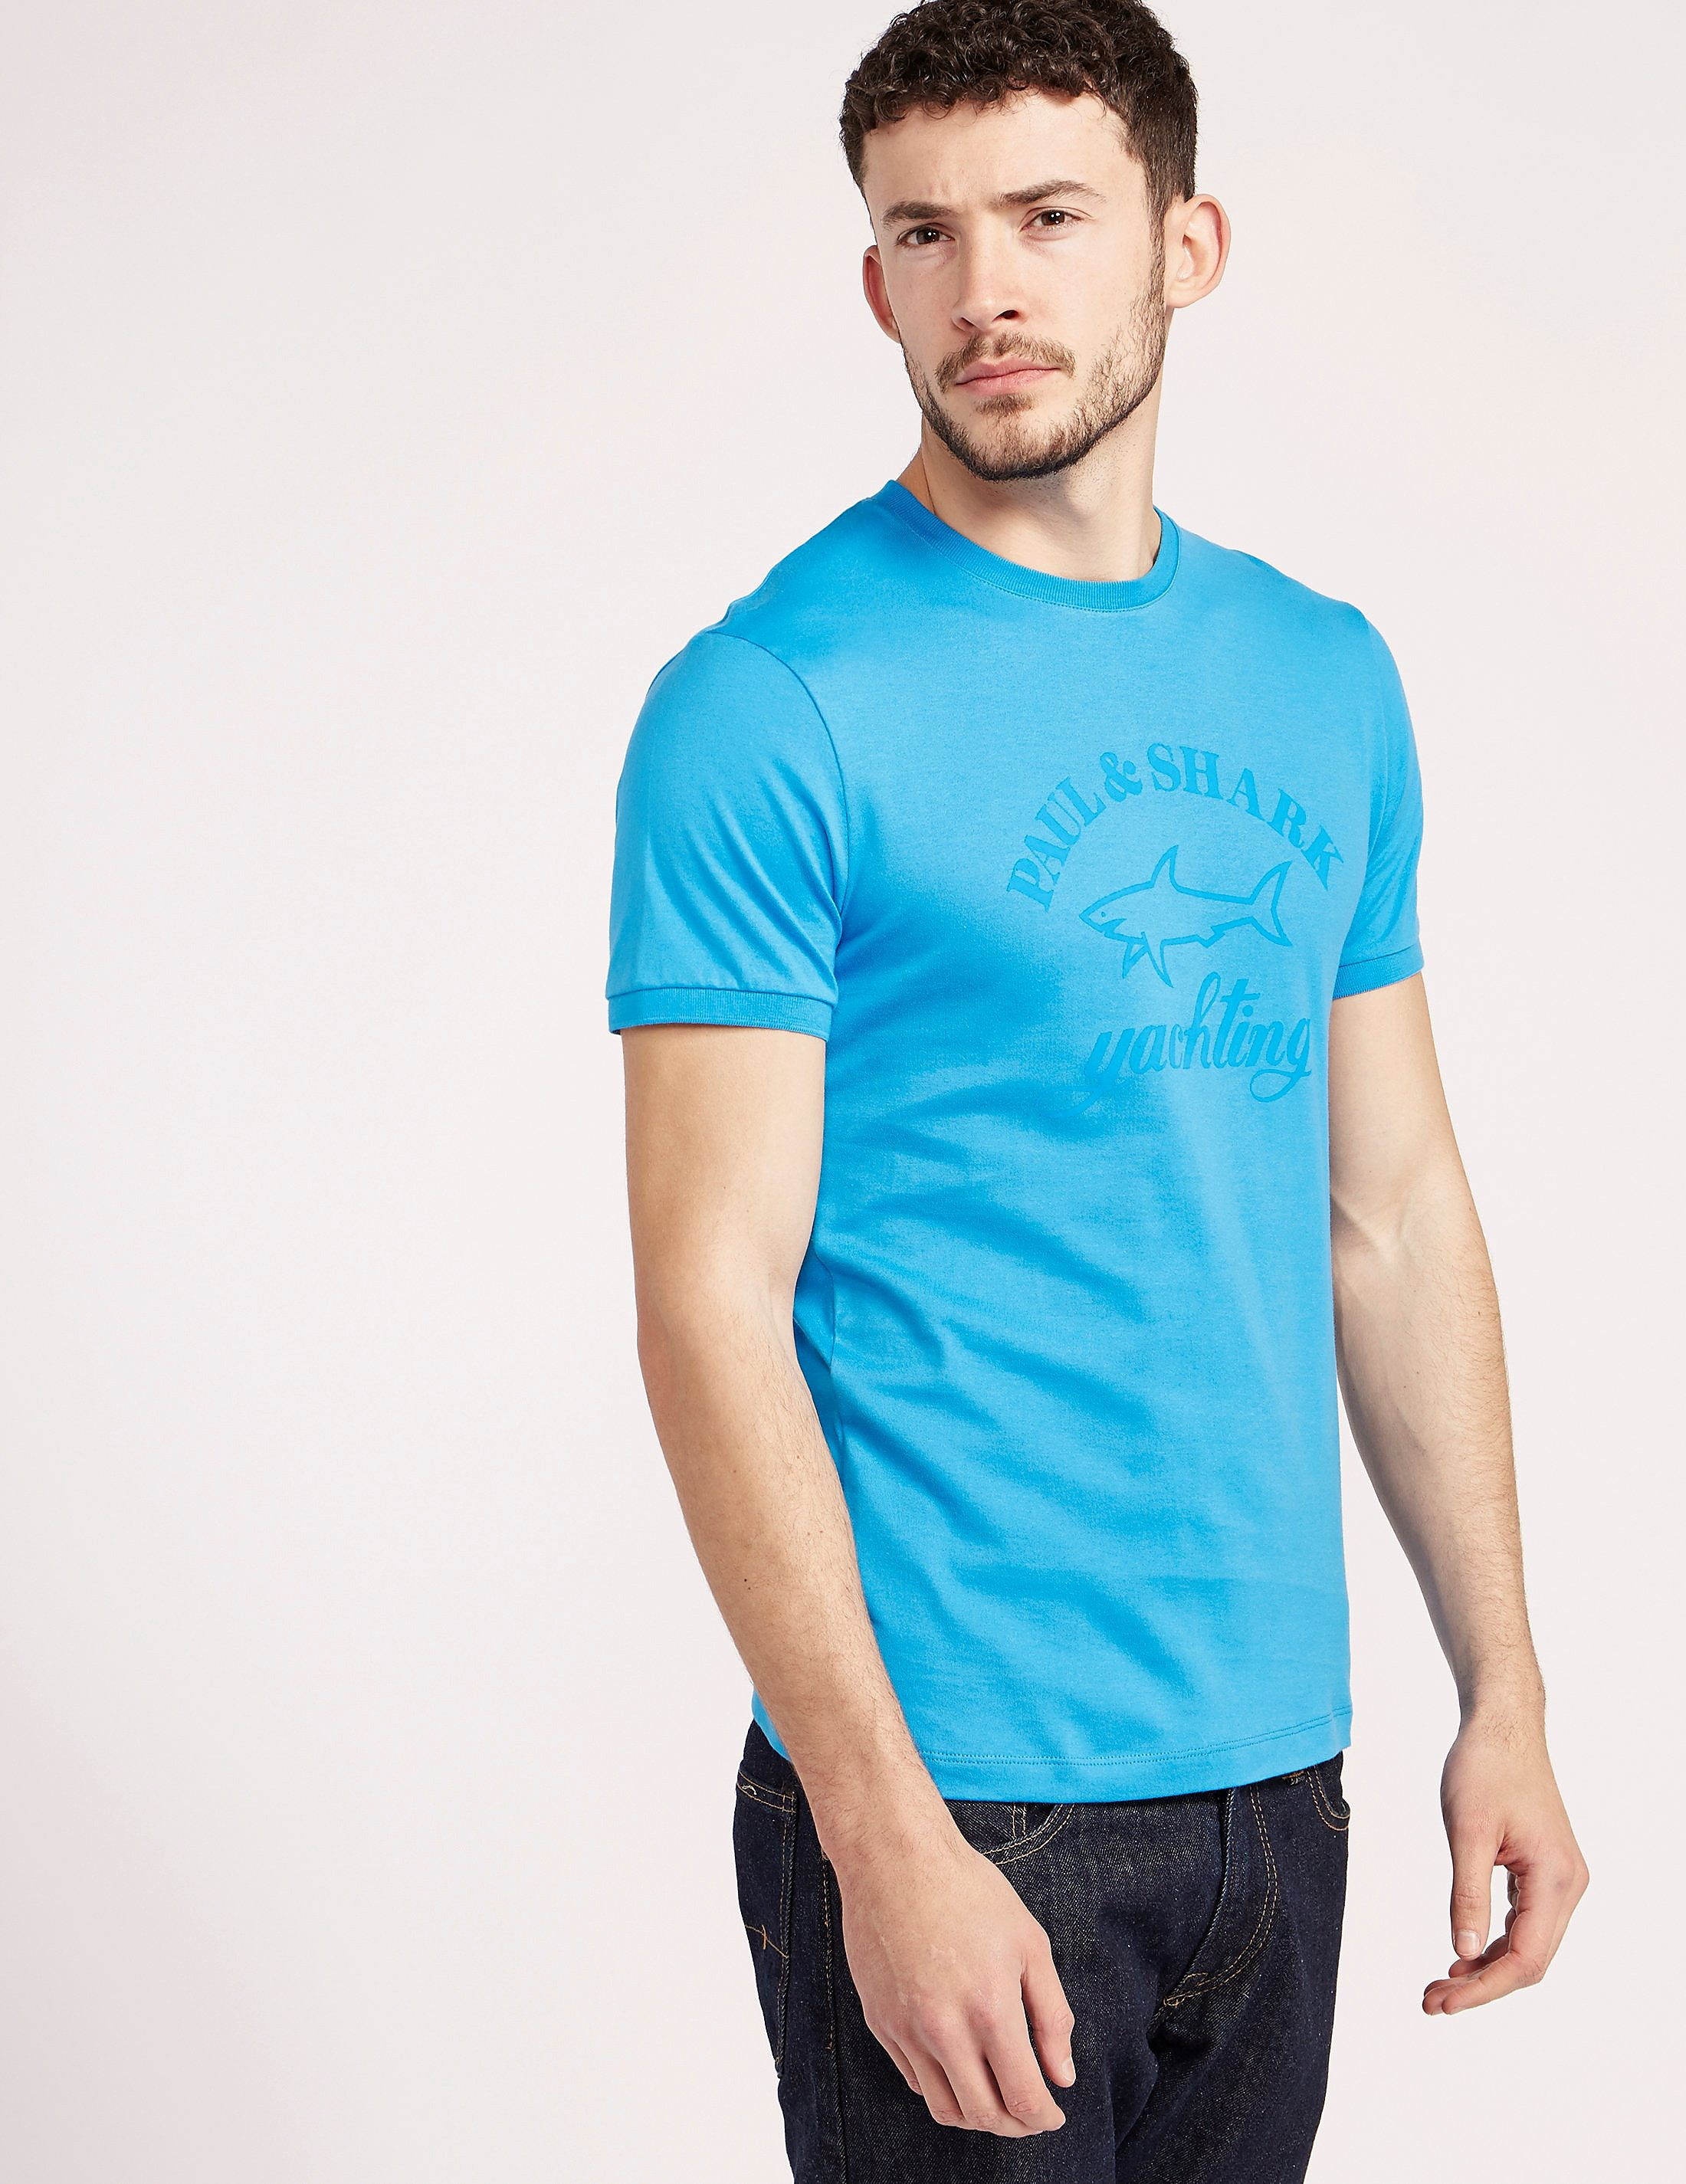 Paul and Shark Tonal Print T-Shirt